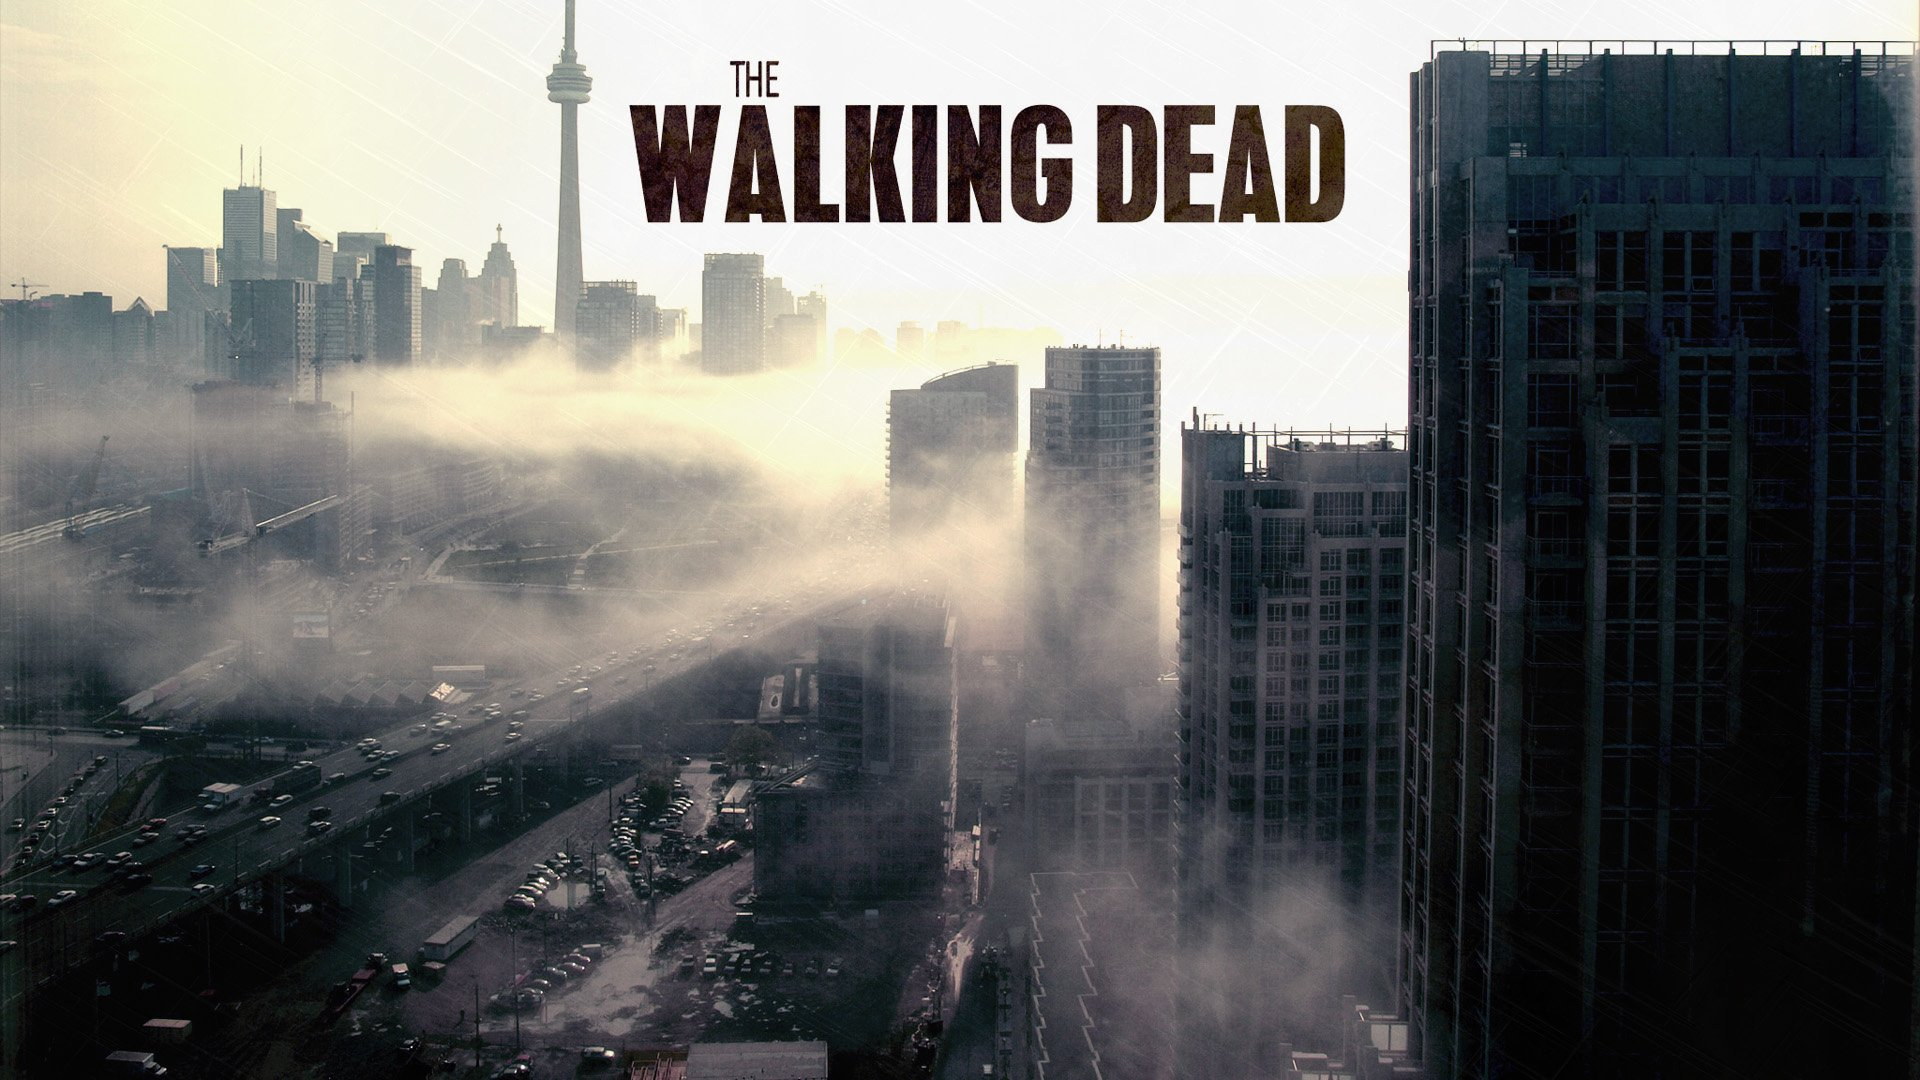 THE WALKING DEAD Dark Horror Zombie Series Apocalyptic